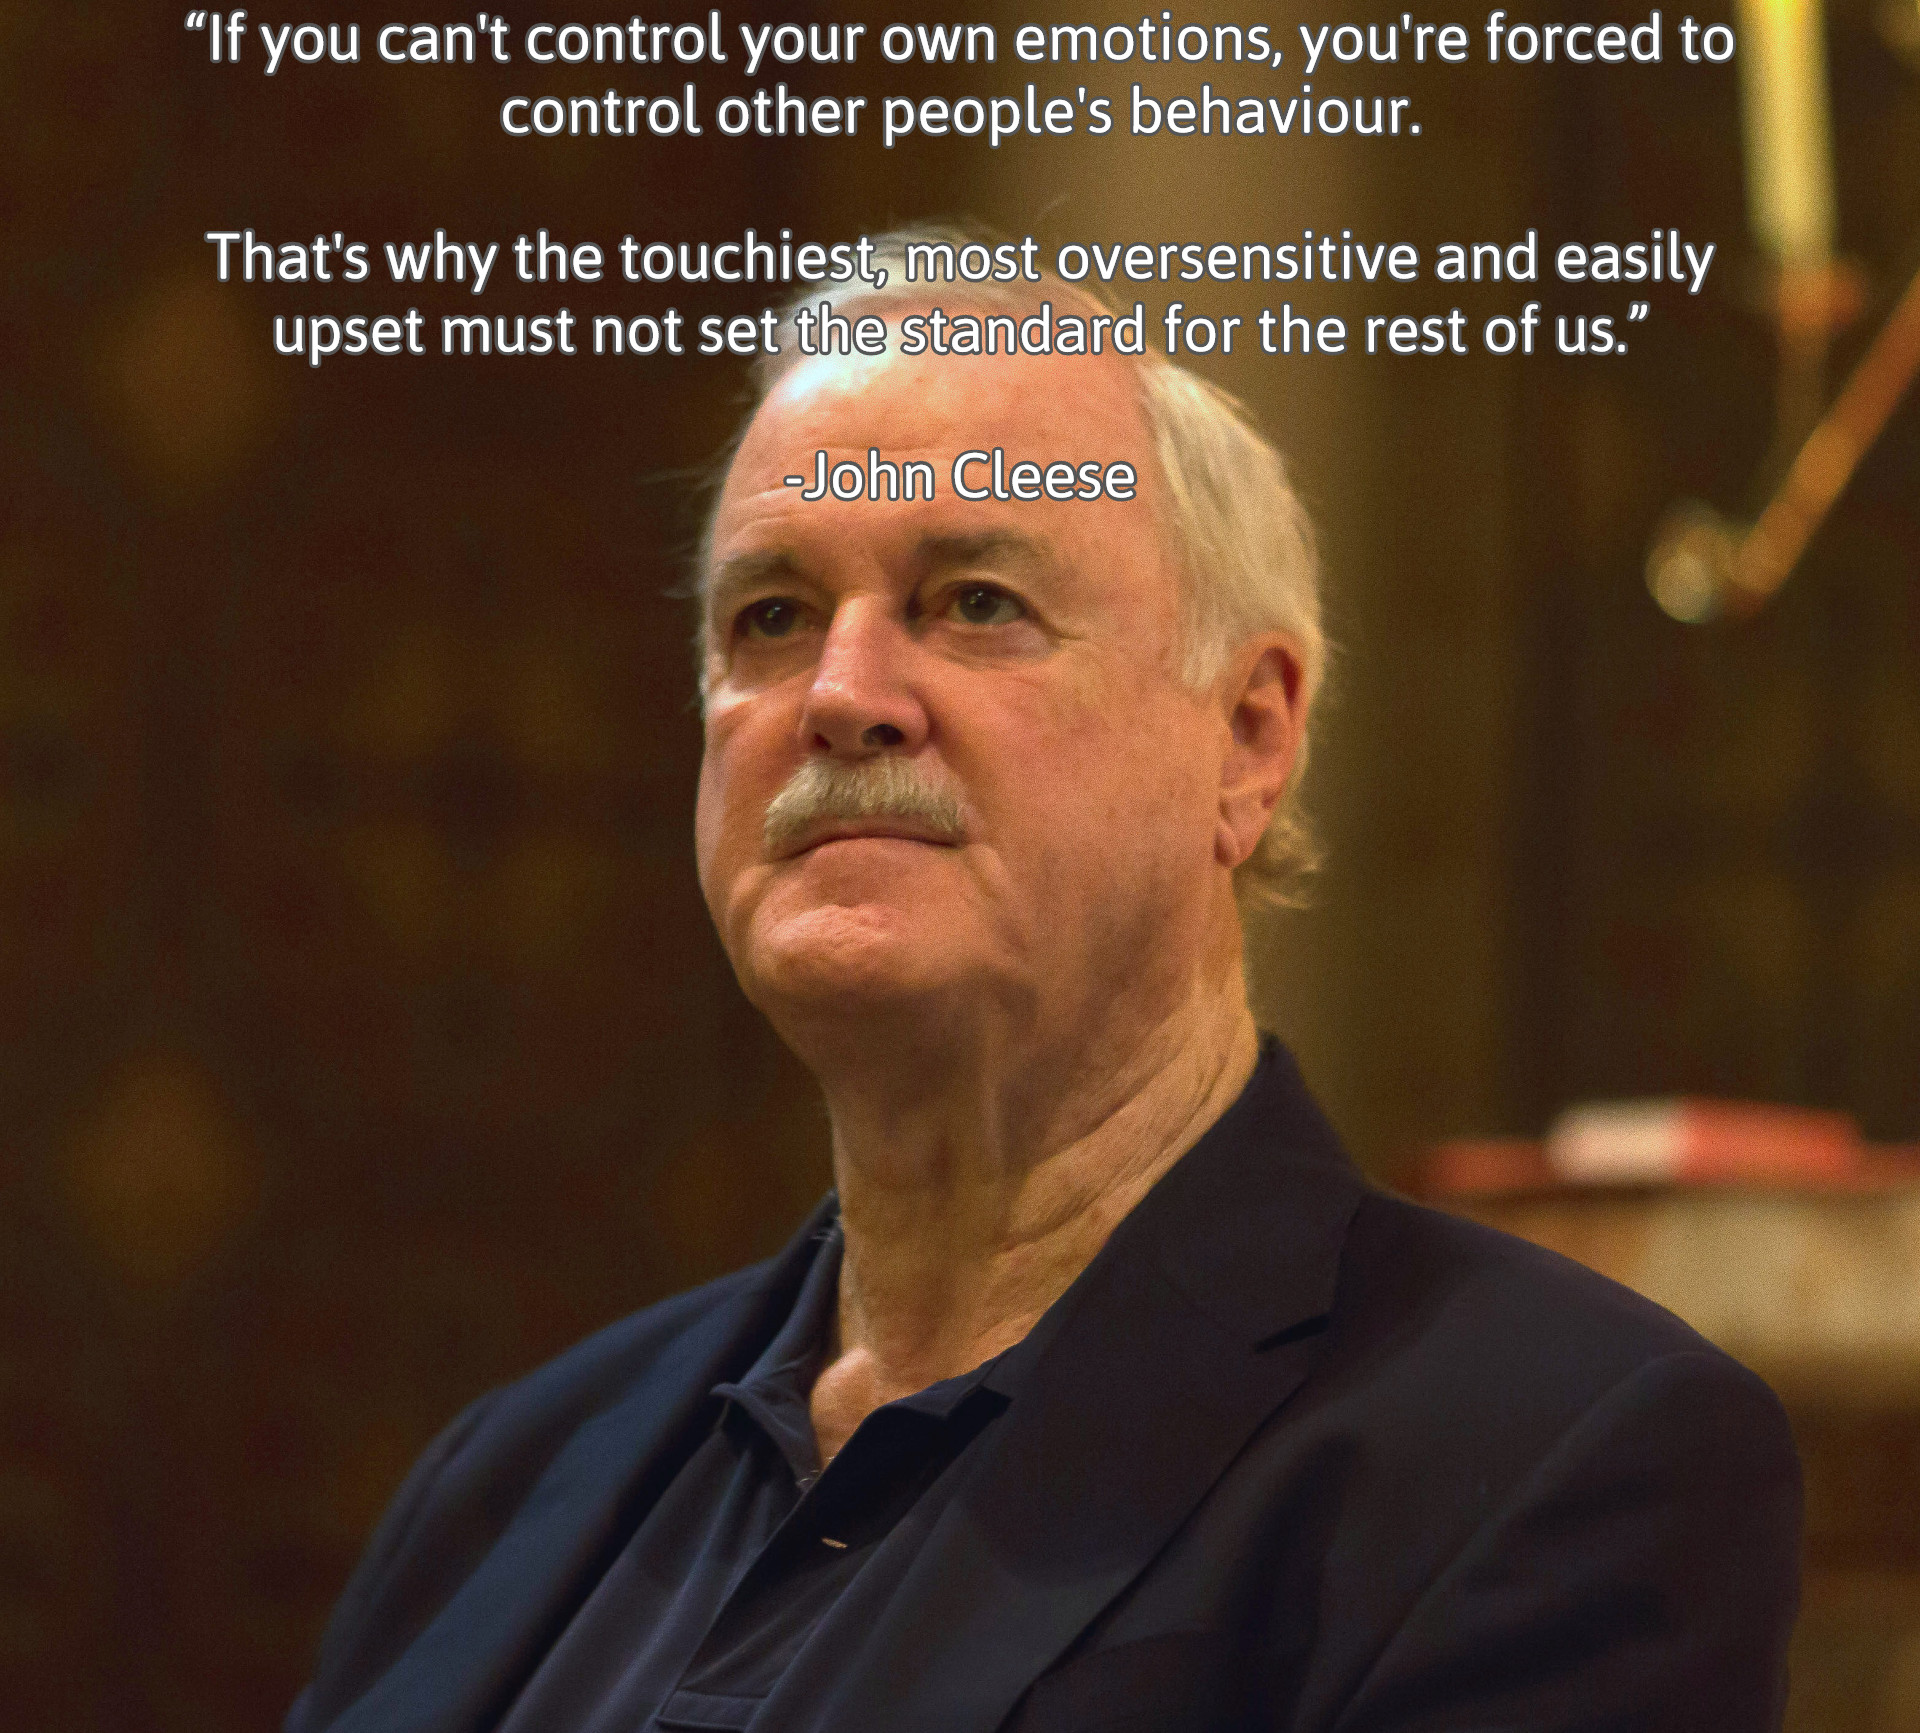 """If you can't control your own emotions, you're forced to control other people's behaviour."" -John Cleese [1920×1733]"